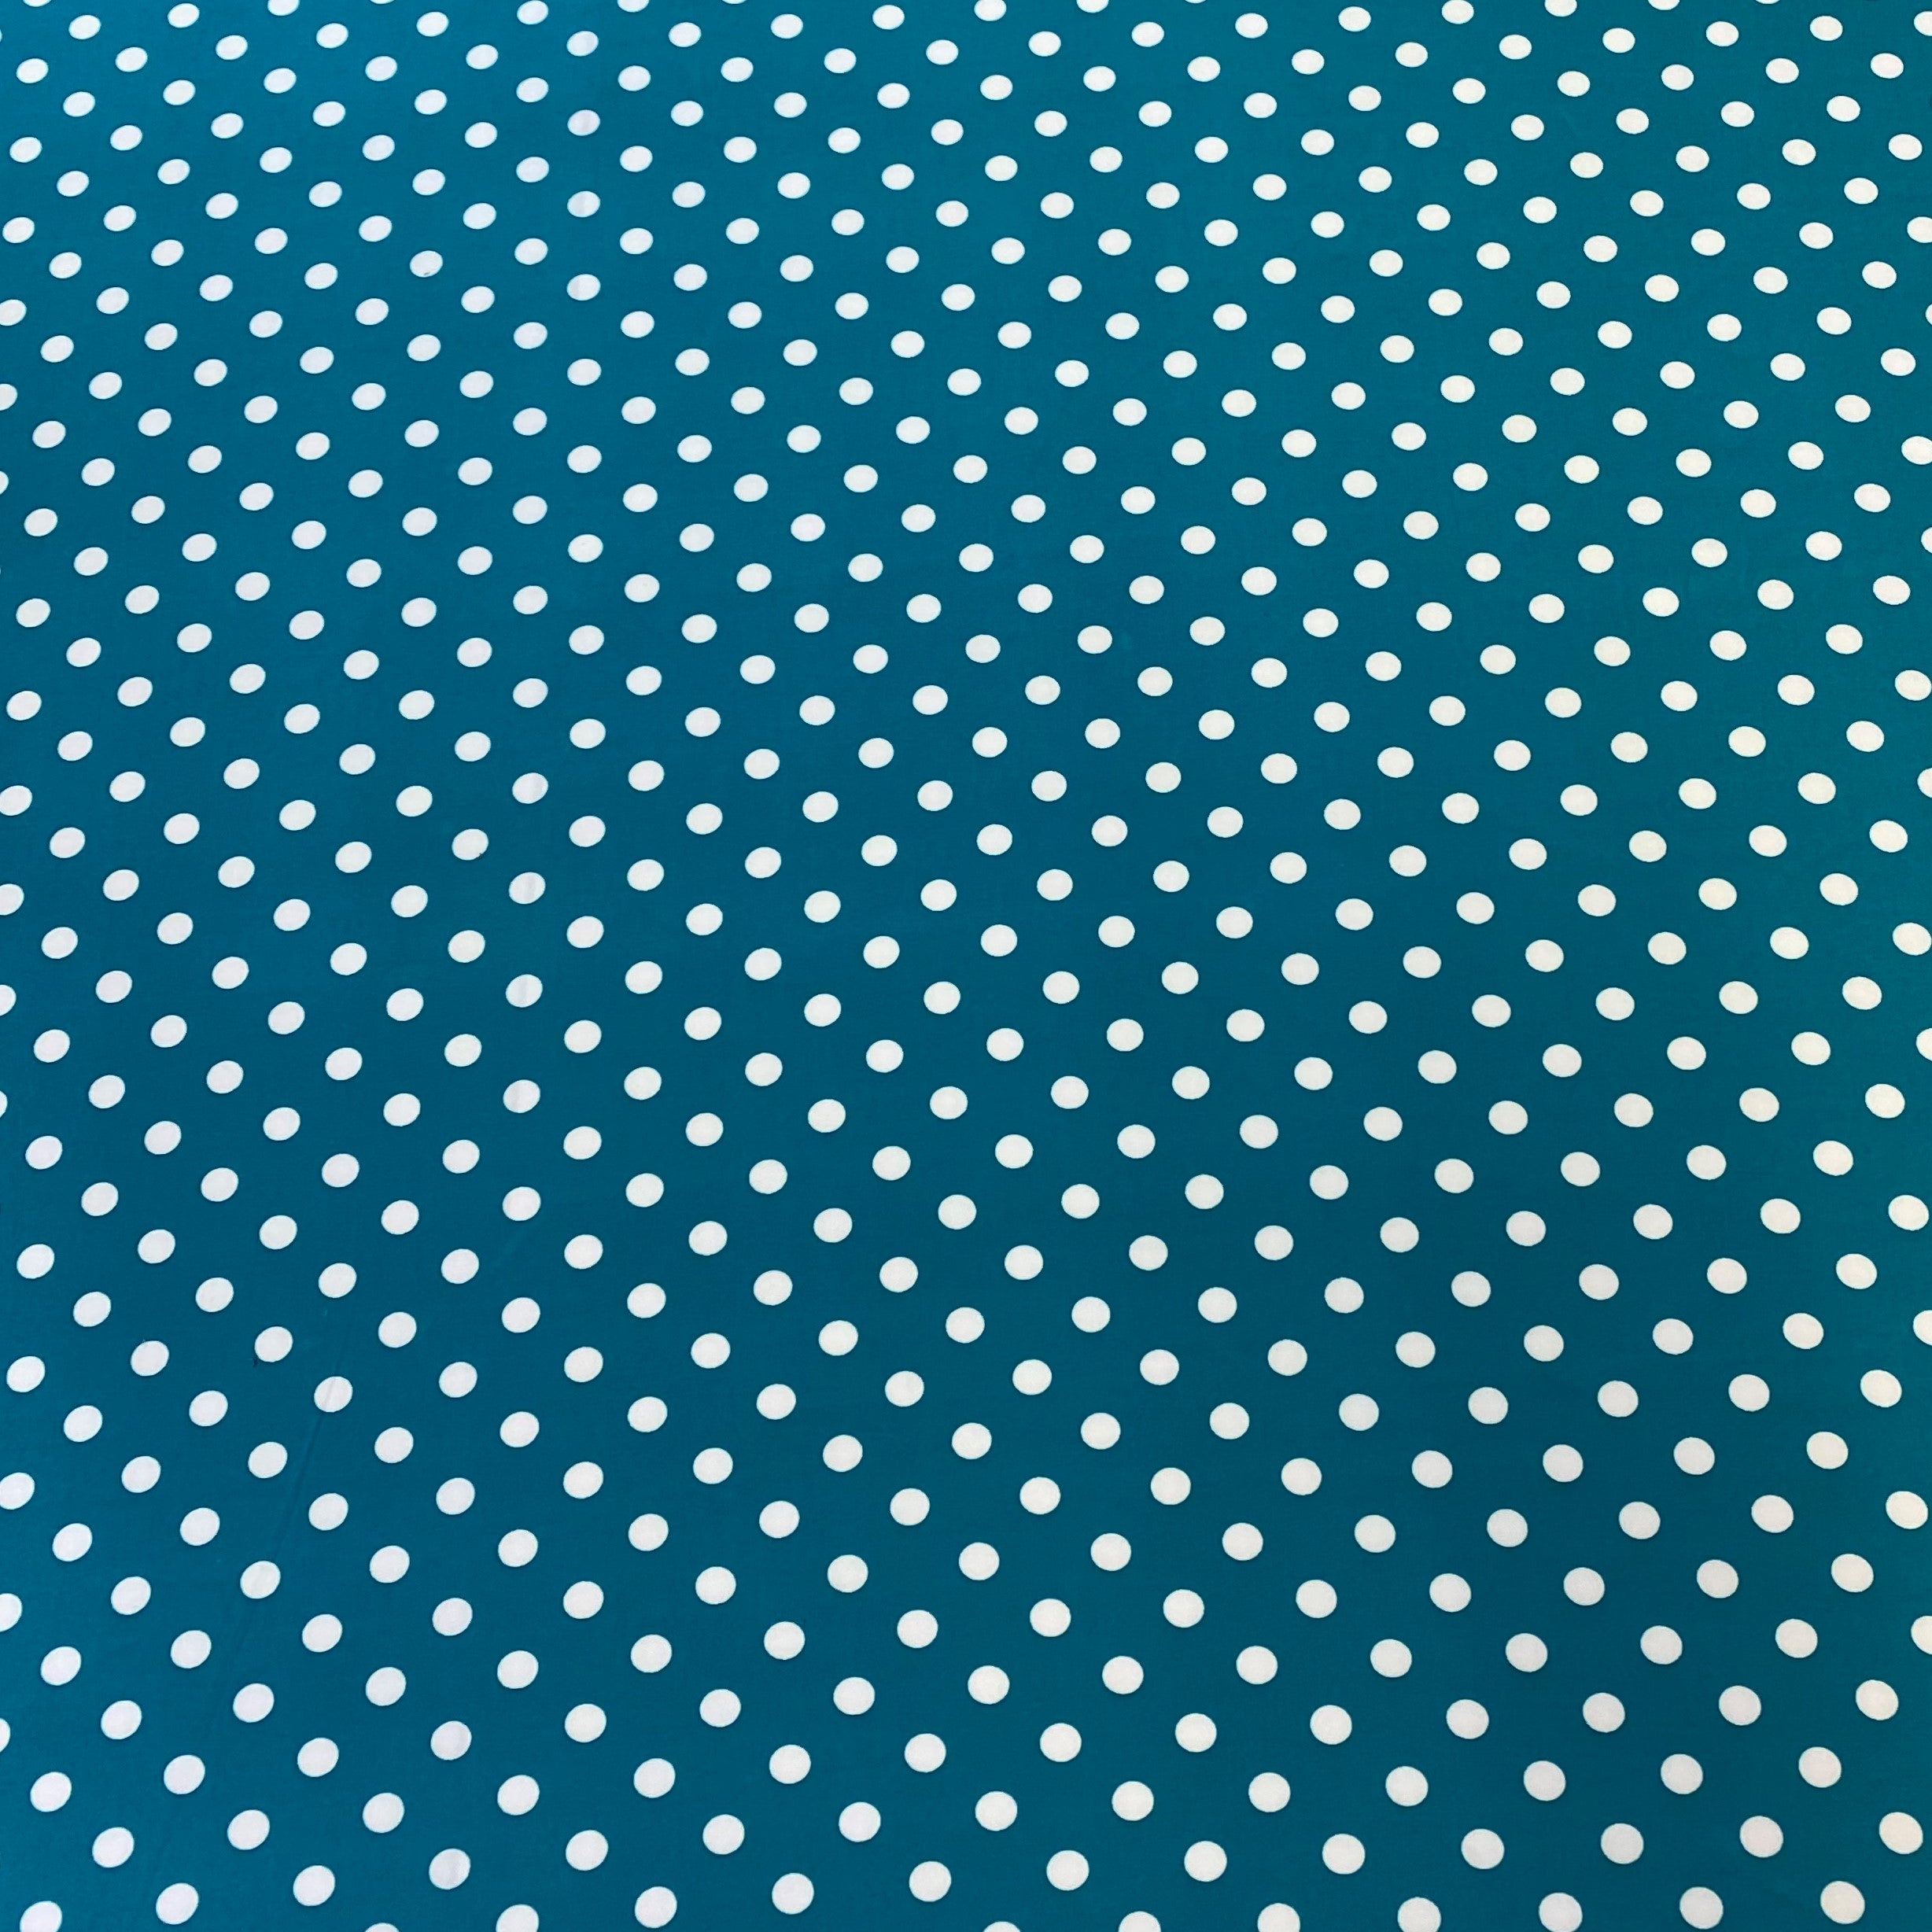 Single Brushed Poly - Mermaid Dots